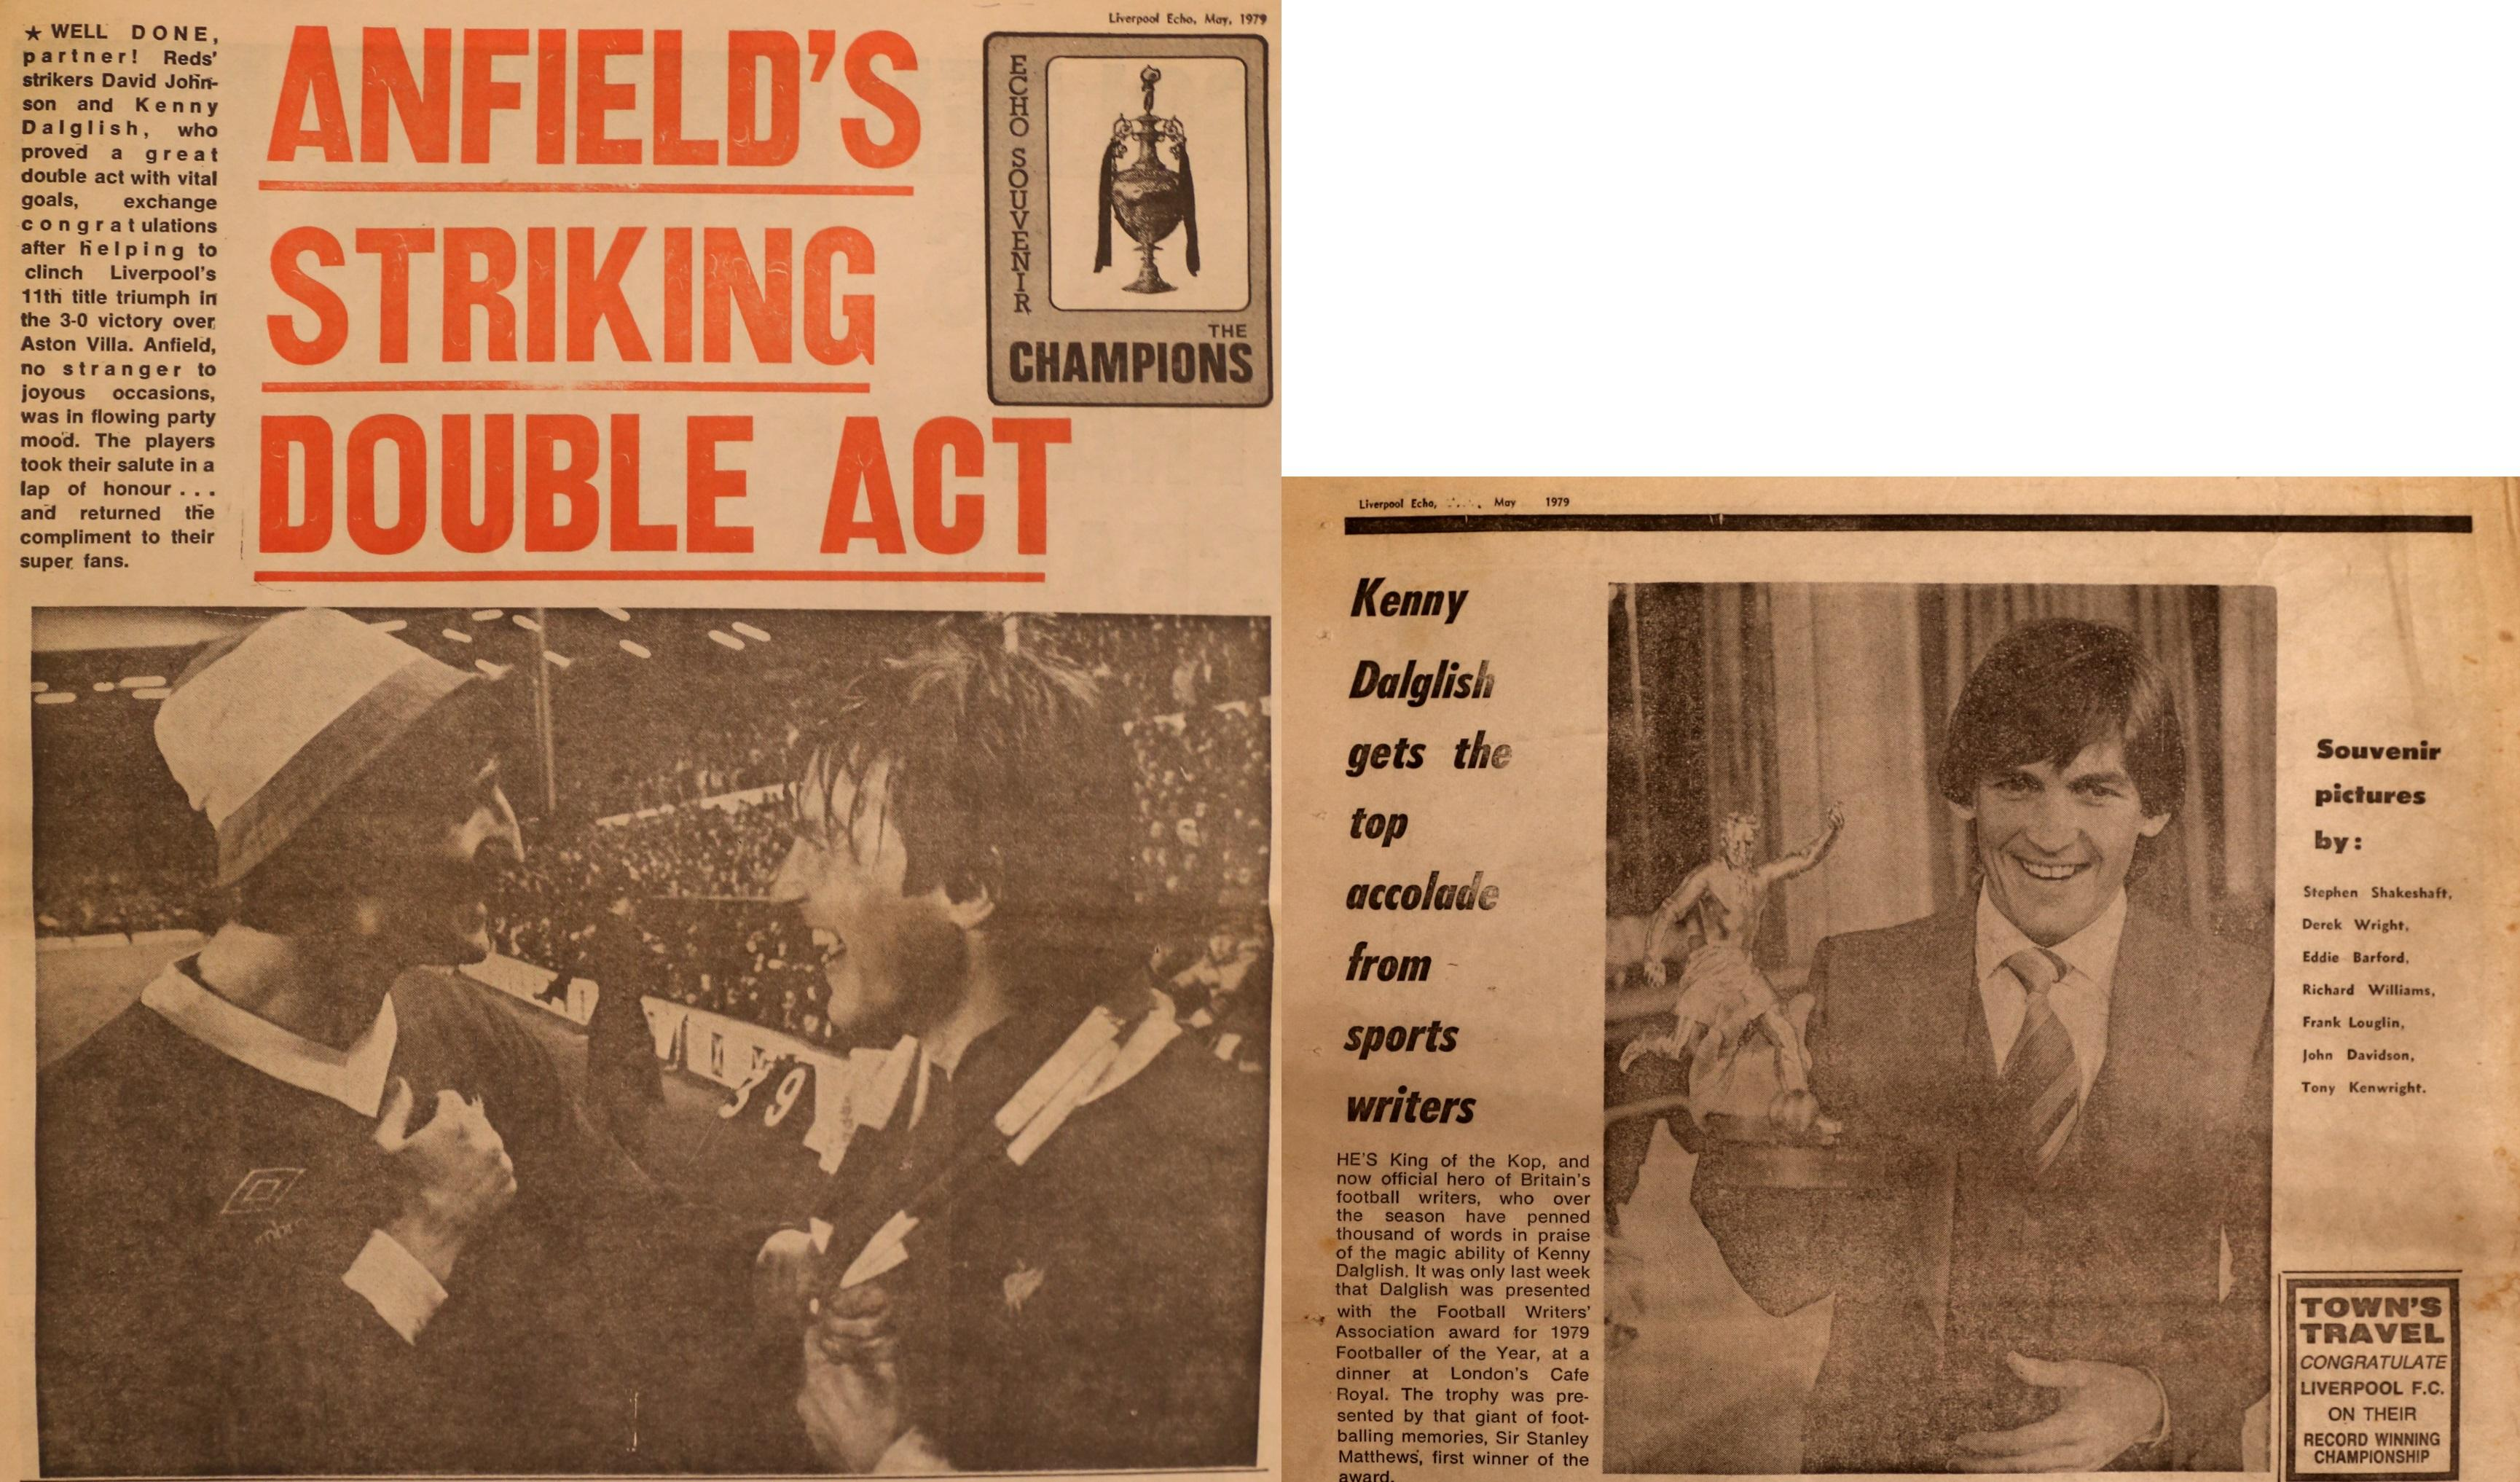 Anfield's striking double act - 8 May 1979